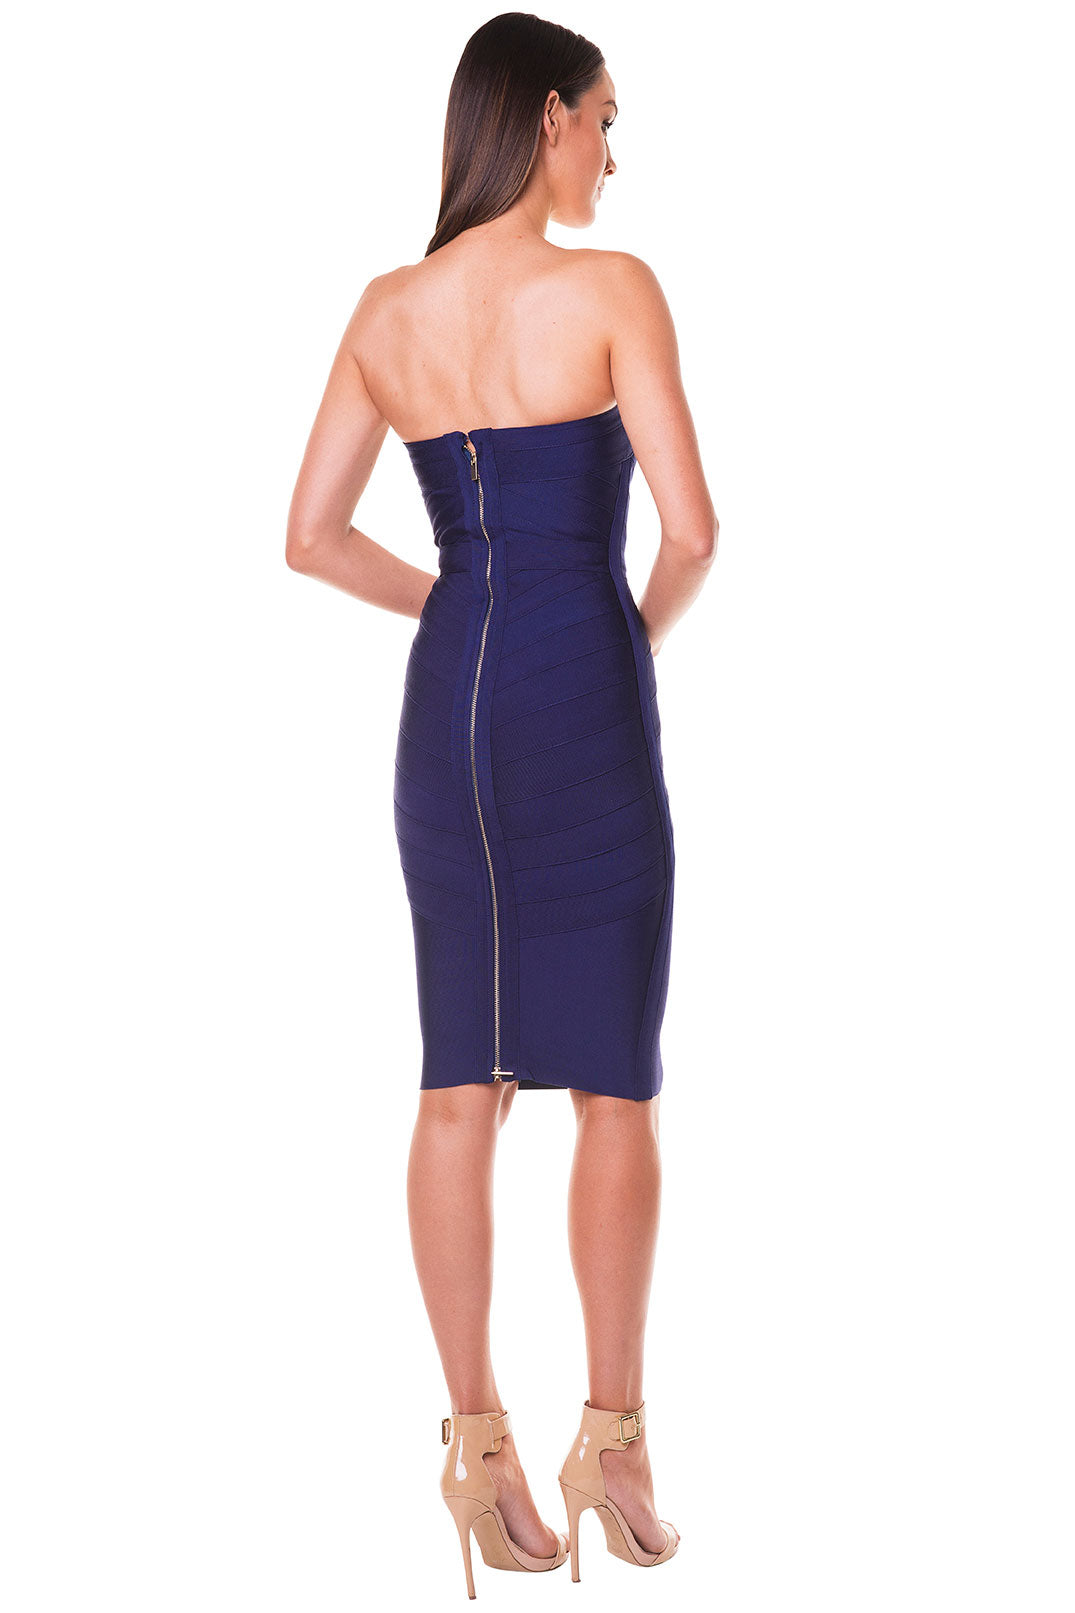 Shila Strapless Bandage Dress